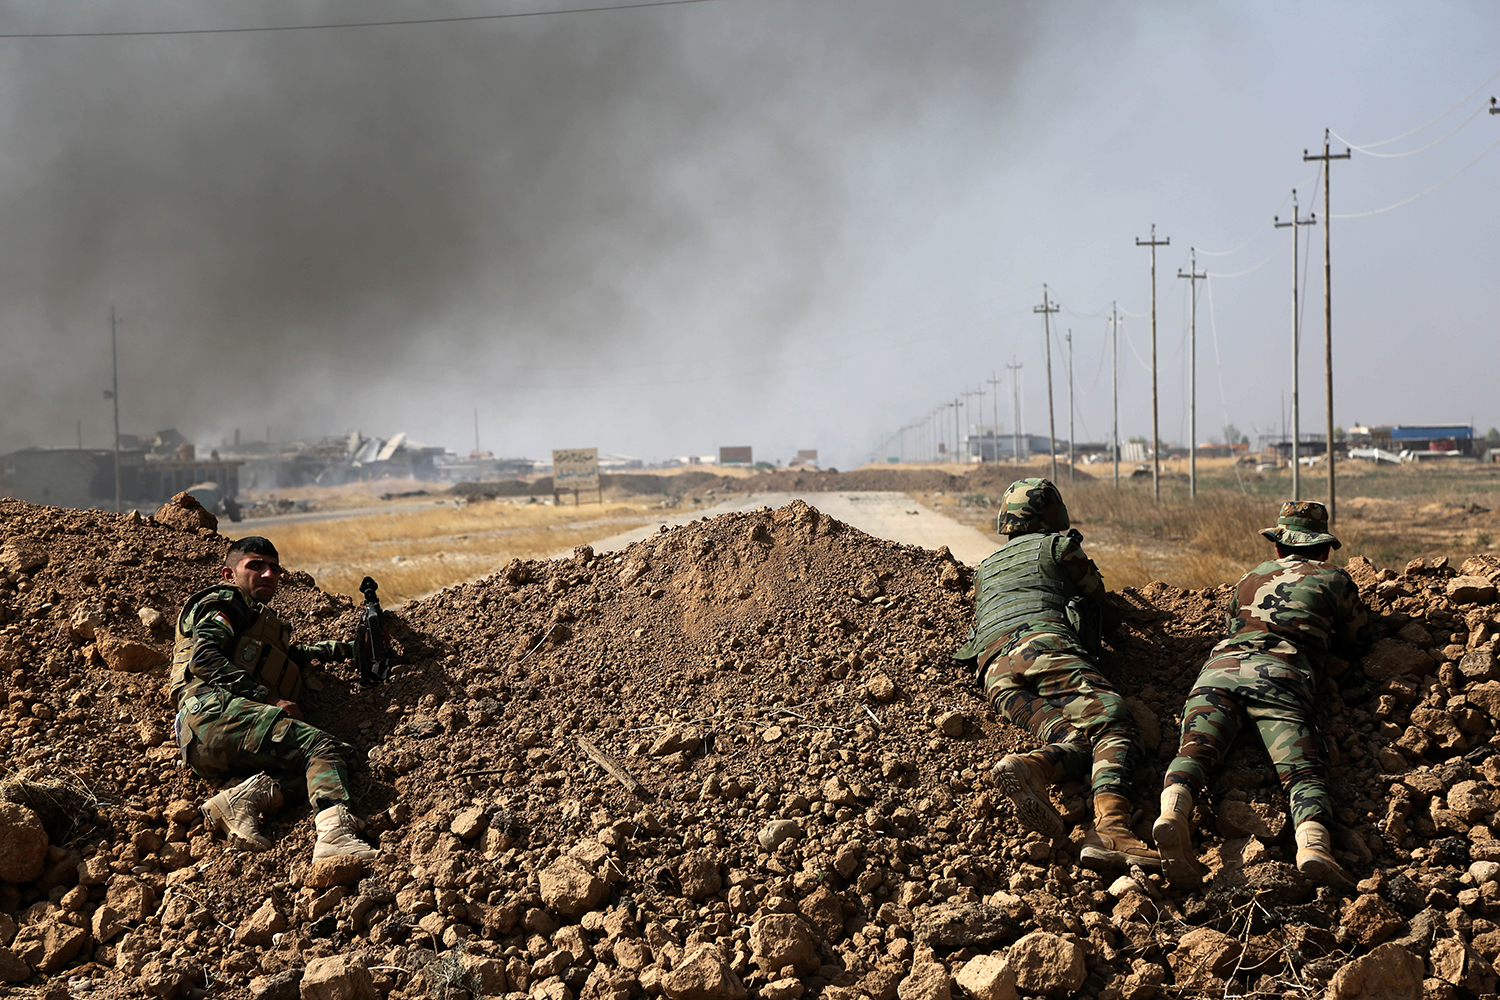 Kurdish security forces take up a position as they fight overlooking the Islamic State-controlled in villages surrounding Mosul, in Khazer, about 30 kilometers (19 miles) east of Mosul, Iraq, Monday, Oct. 17, 2016. Iraqi government and Kurdish forces, backed by U.S.-led coalition air and ground support, launched coordinated military operations early on Monday as the long-awaited fight to wrest the northern city of Mosul from Islamic State fighters got underway.(AP Photo)